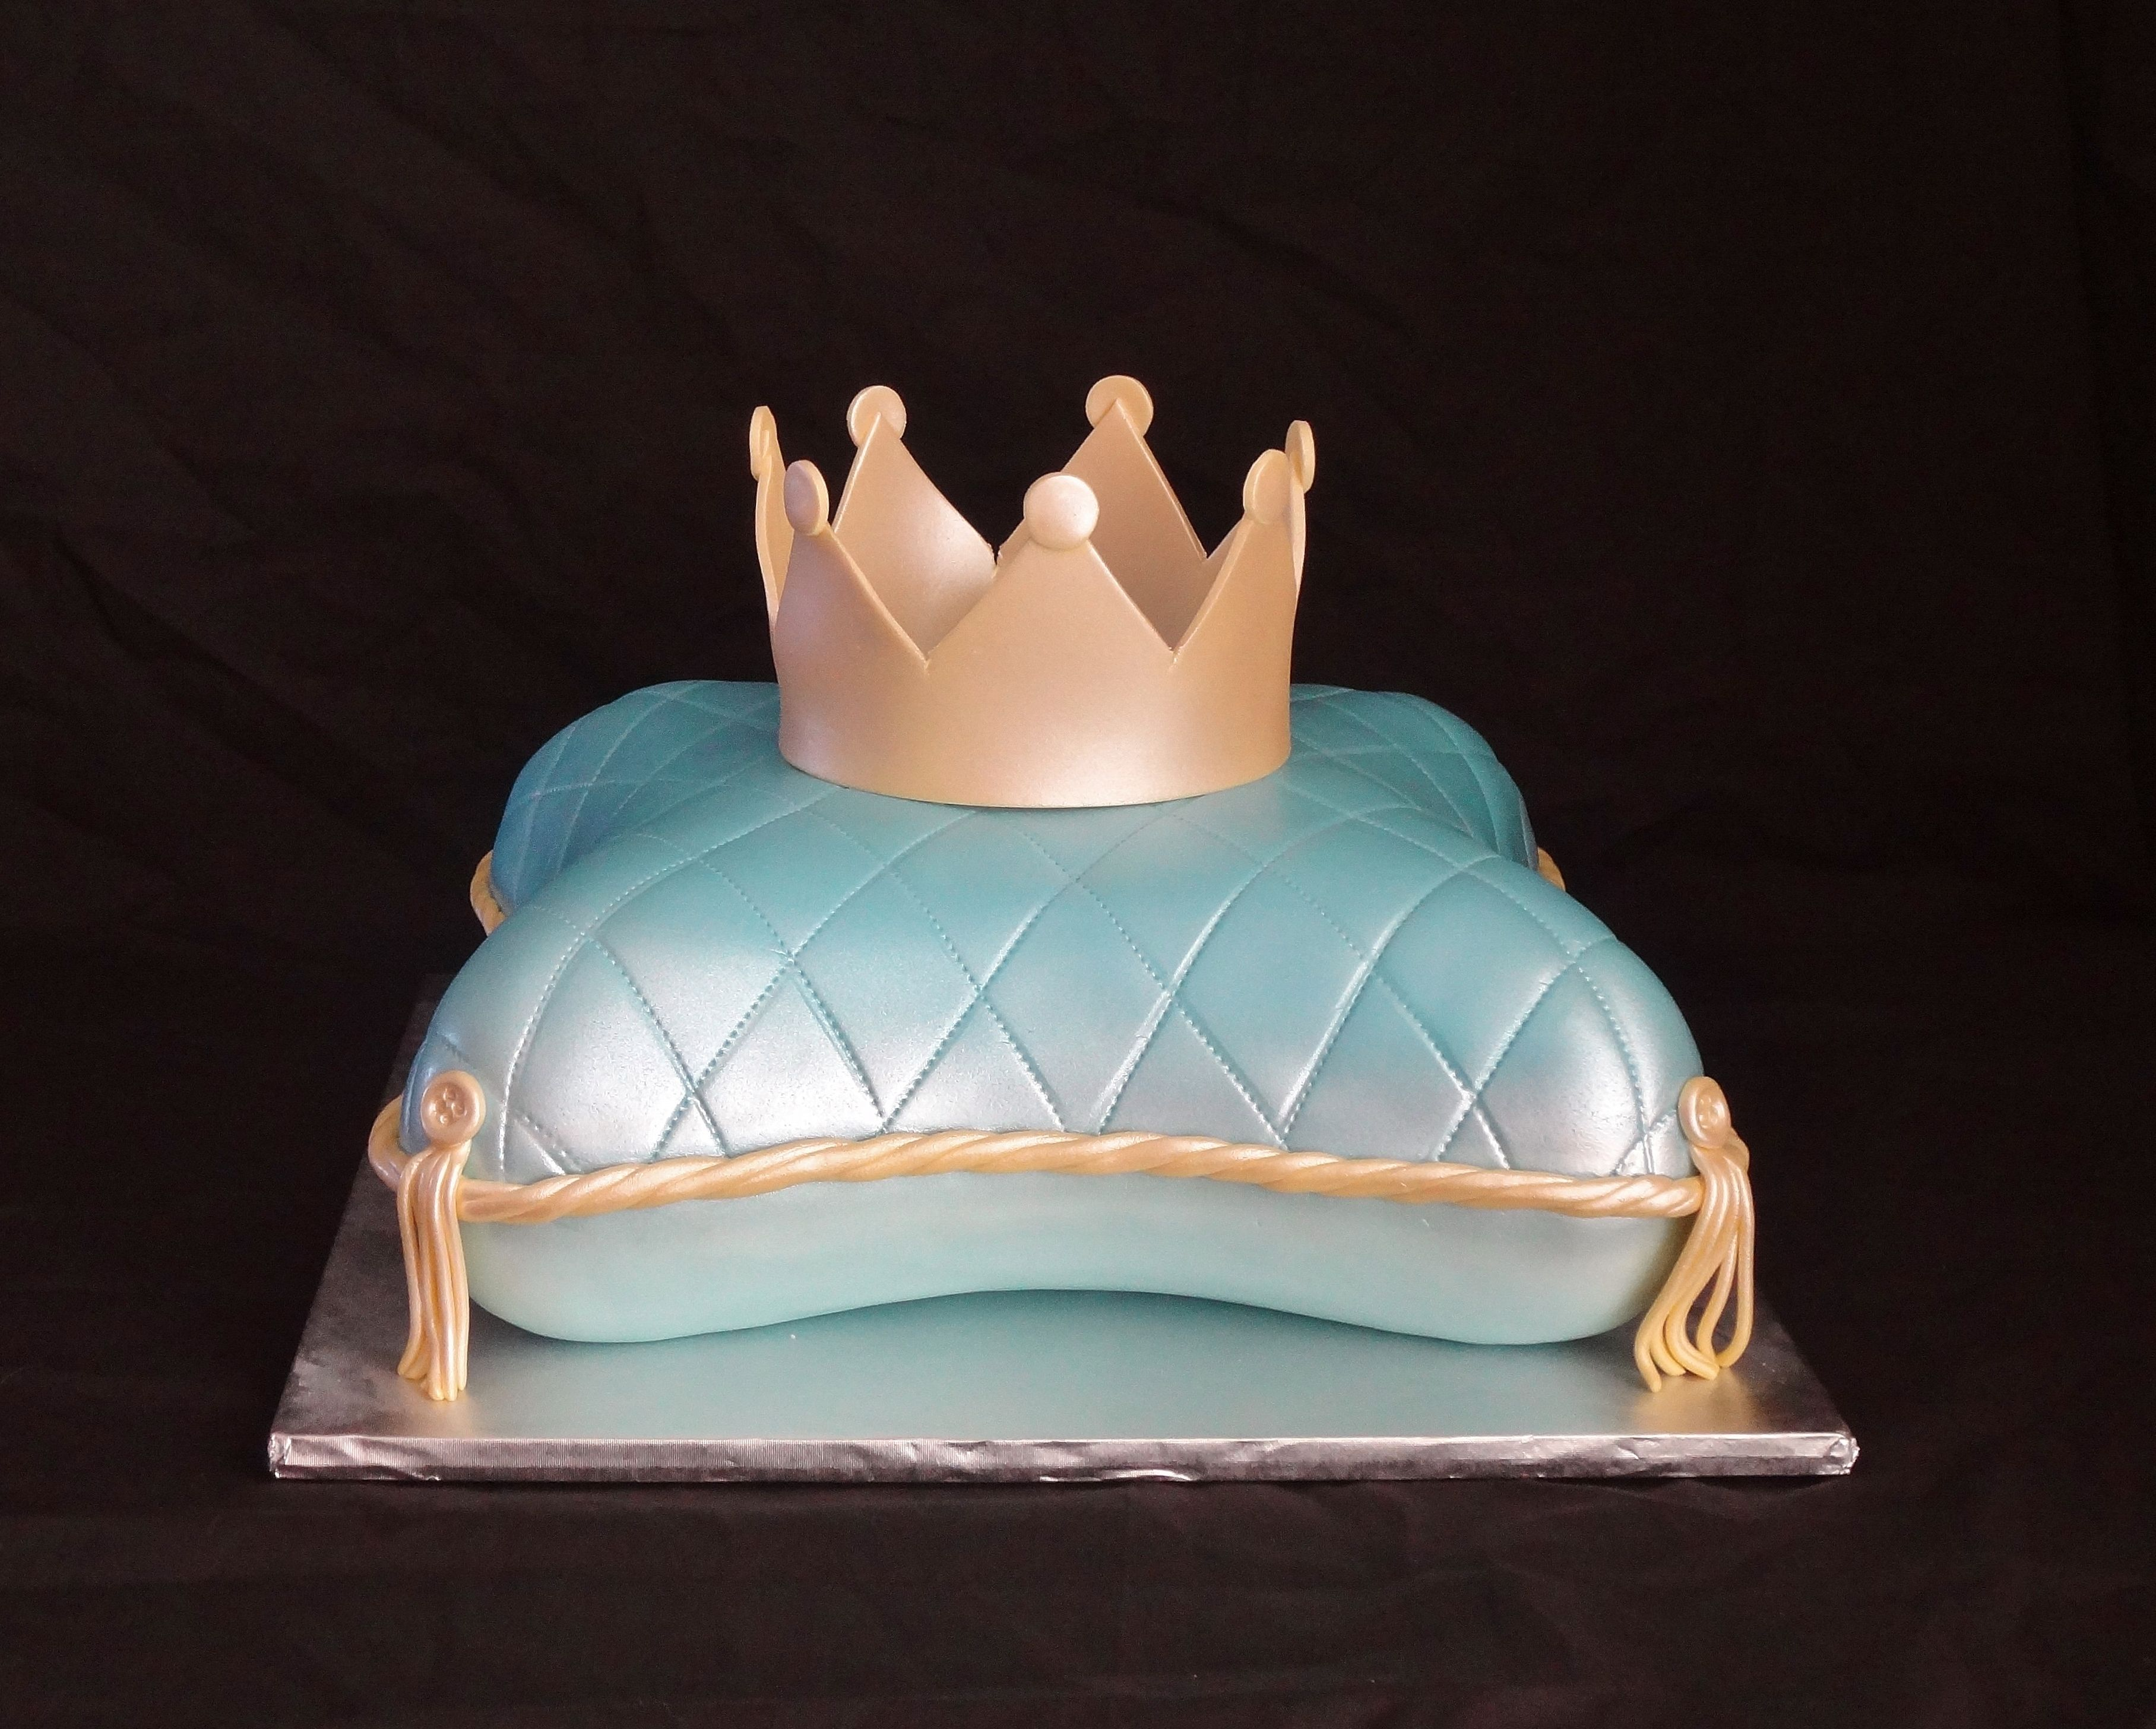 Princes cake complete with a pillow